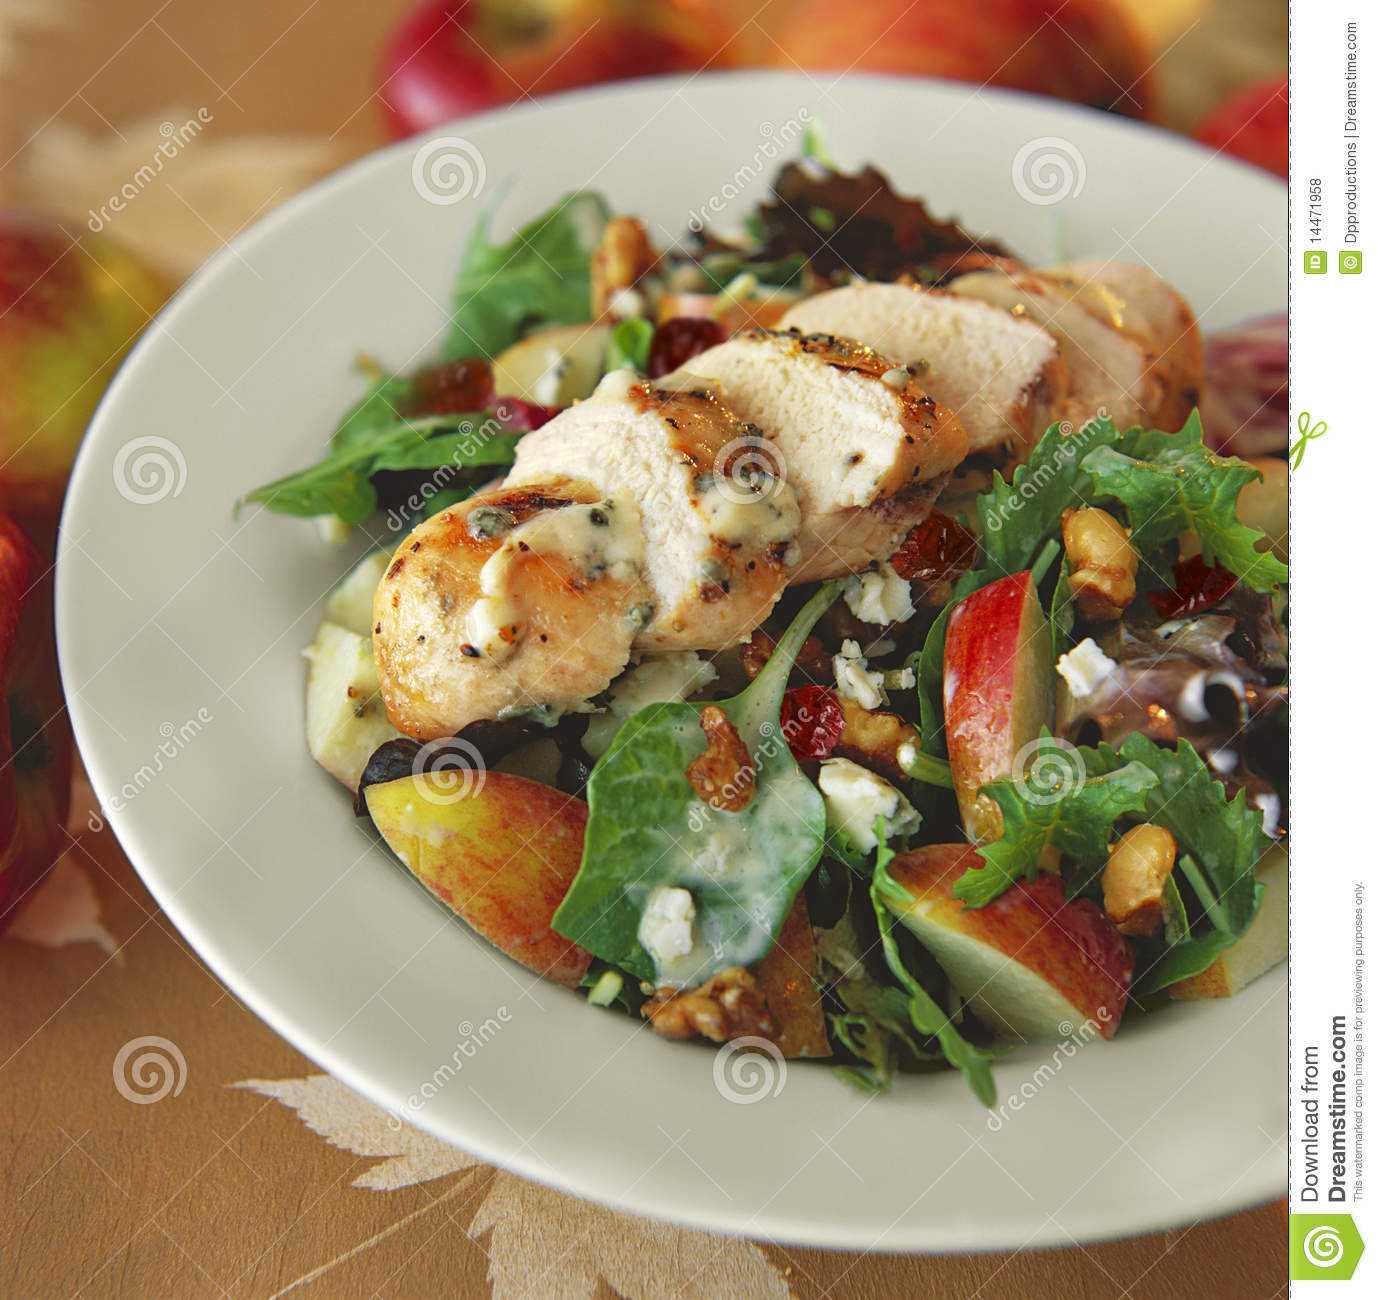 Gourmet Chicken Salad  Gourmet Chicken Salad stock photo Image of healthy